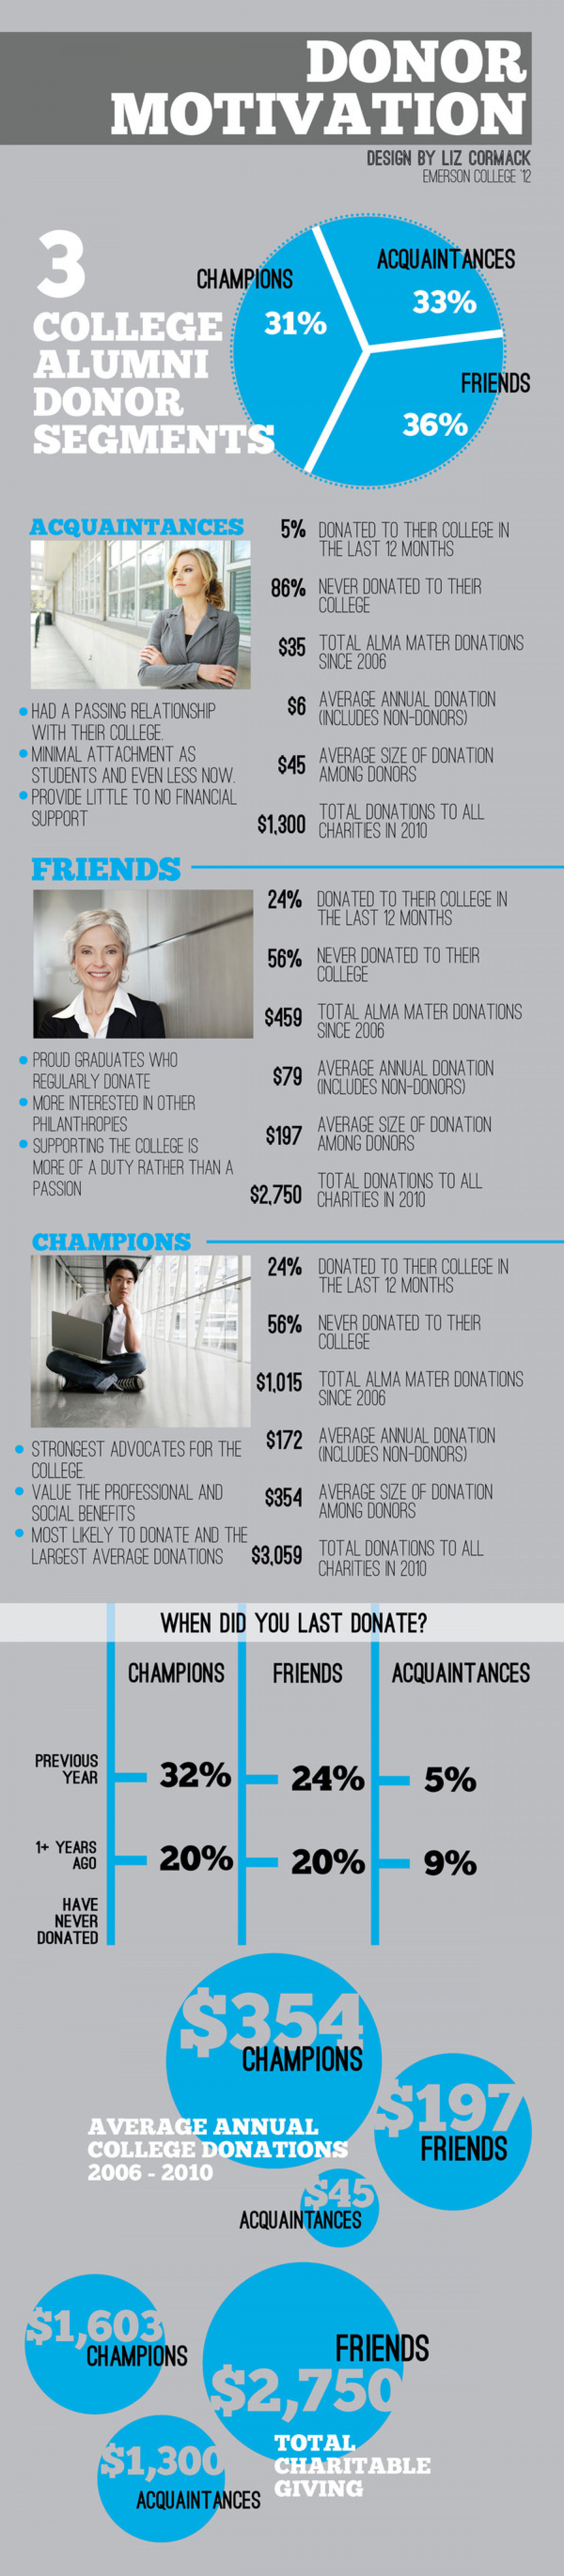 Donor Motivation Infographic